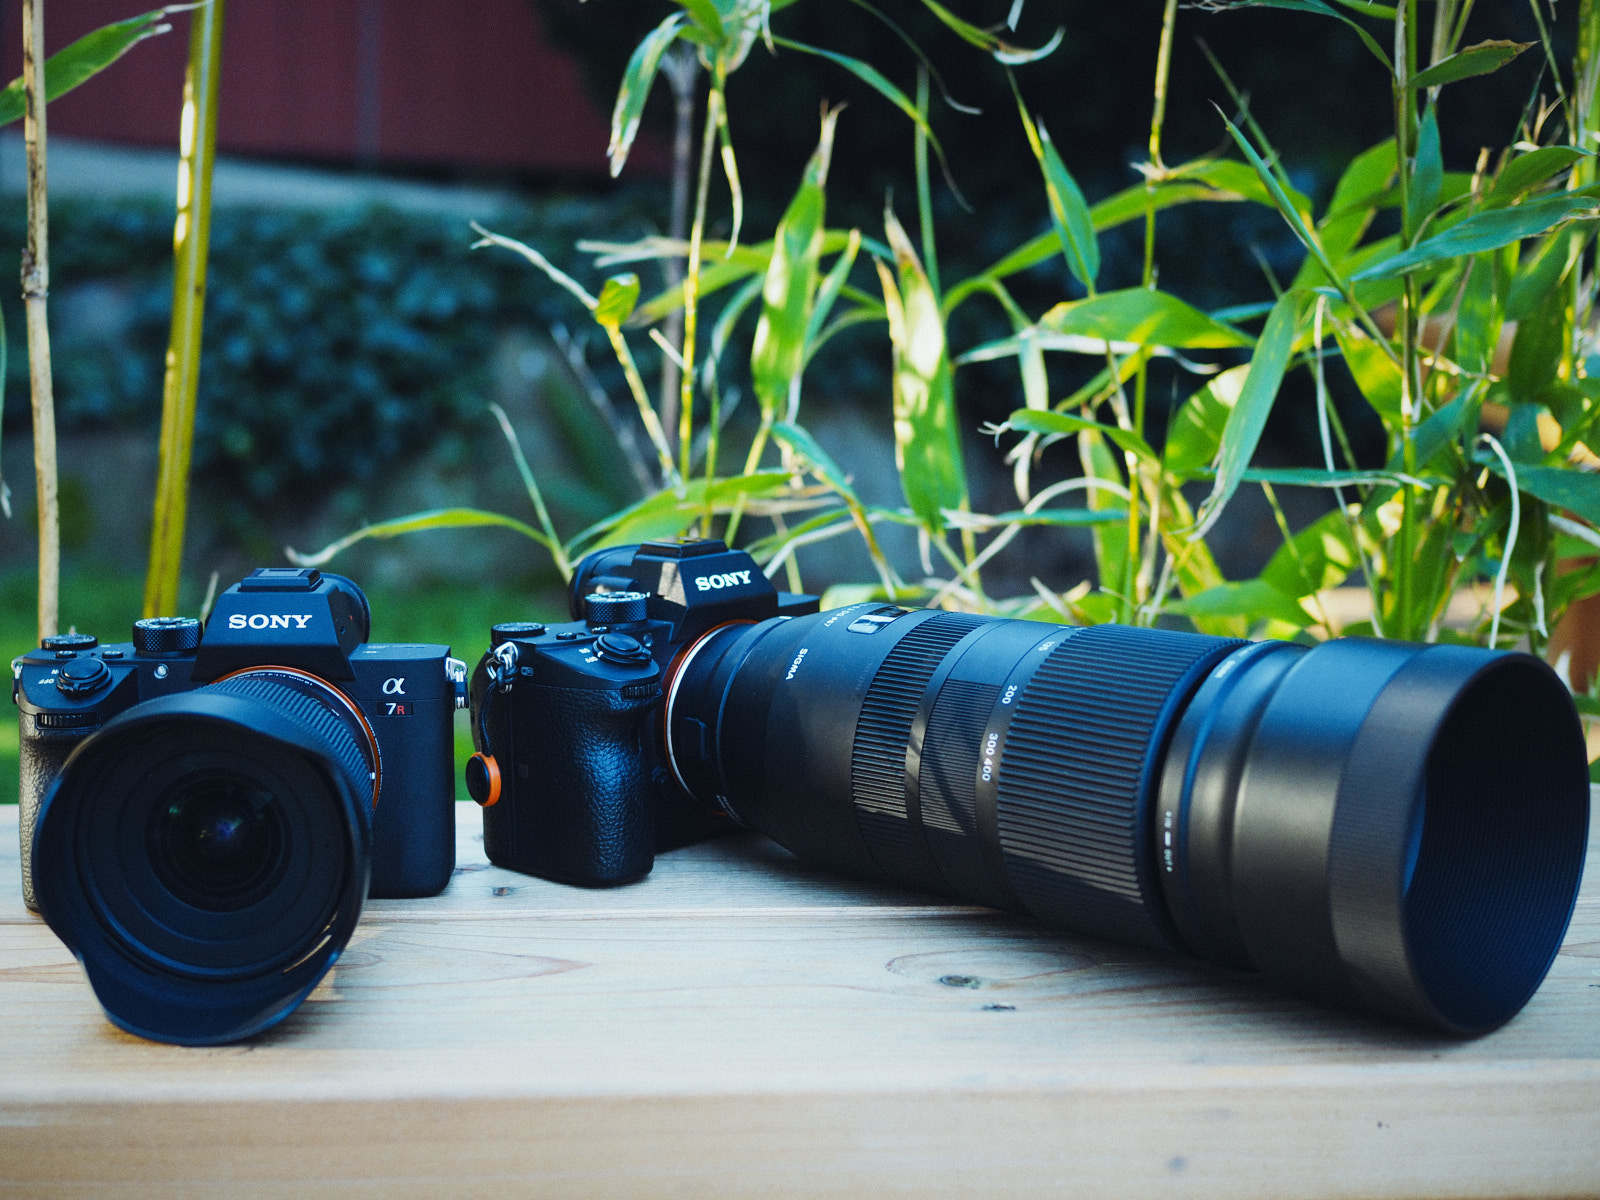 sigma 100 400 goes to work on a budget sony mirrorless pro. Black Bedroom Furniture Sets. Home Design Ideas